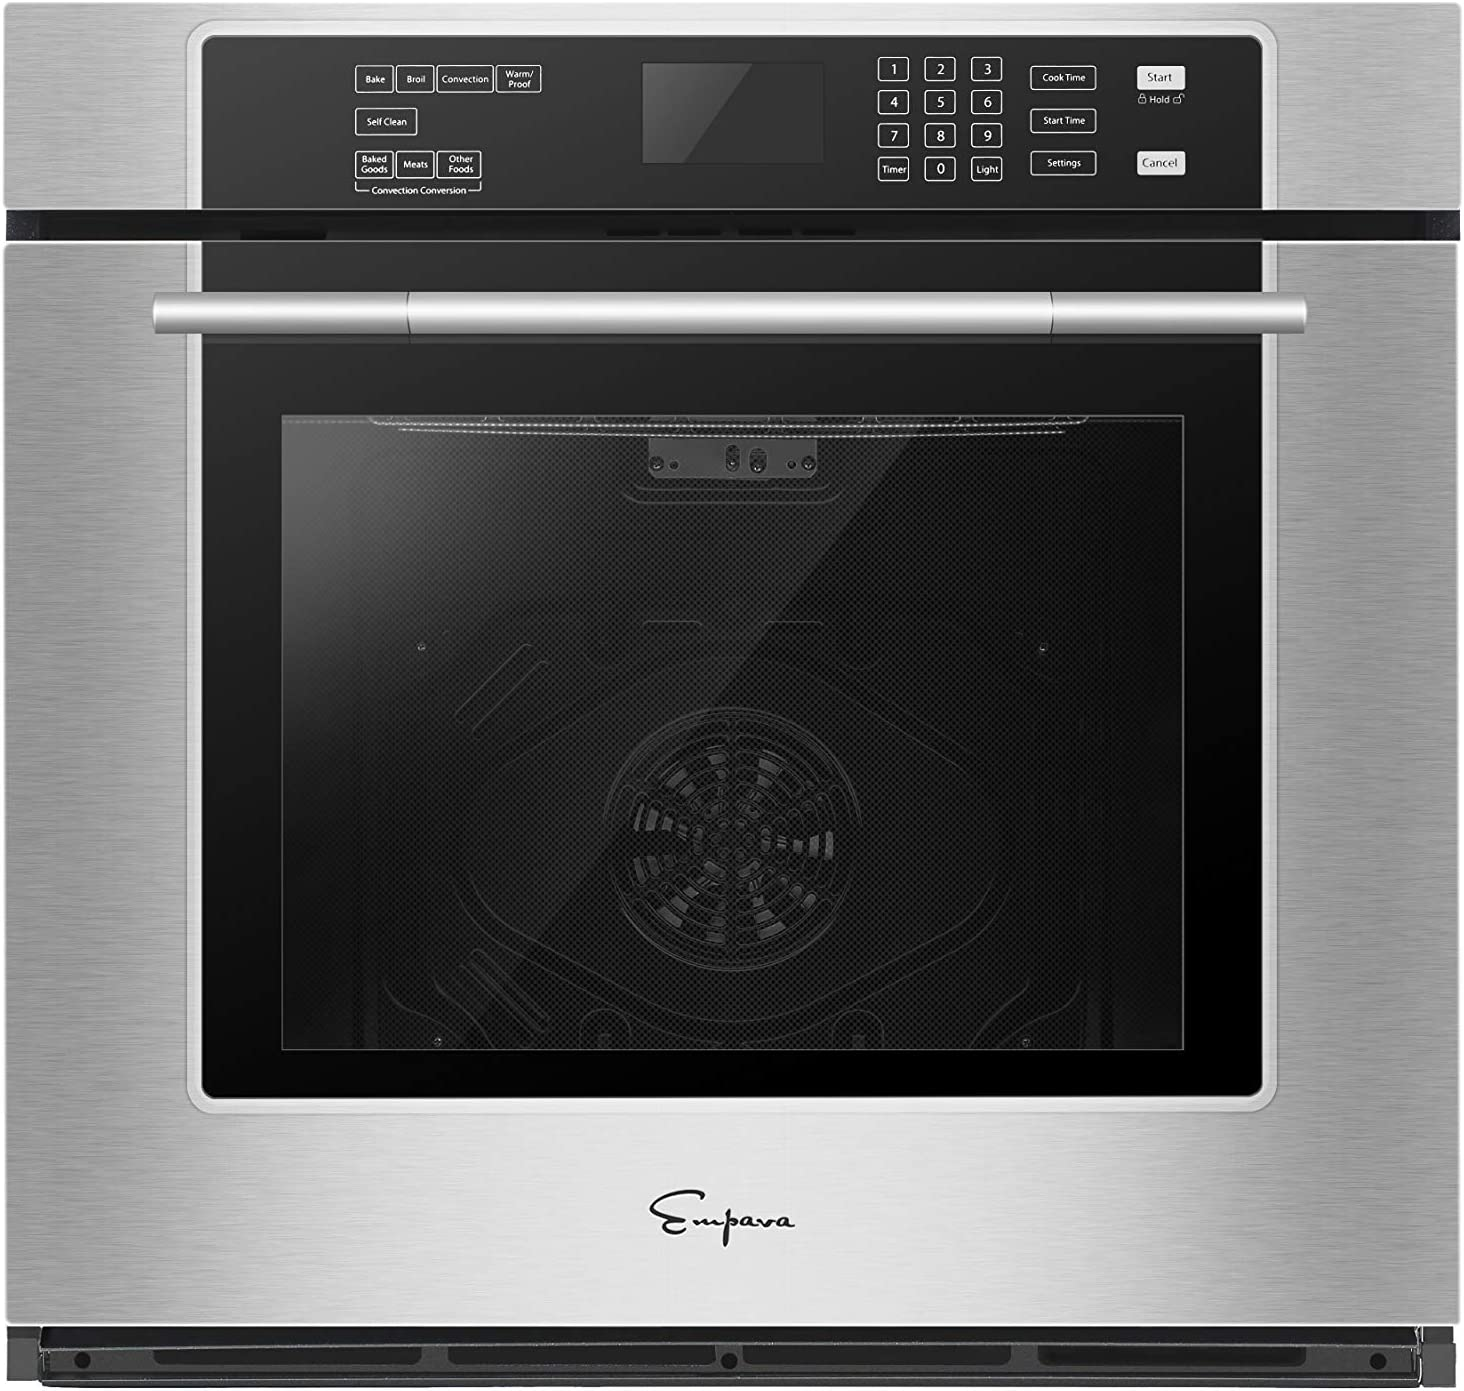 "Empava 30"" Electric Single Wall Oven Self-cleaning Convection Fan Touch Control in Stainless Steel, 30 Inch, Black"